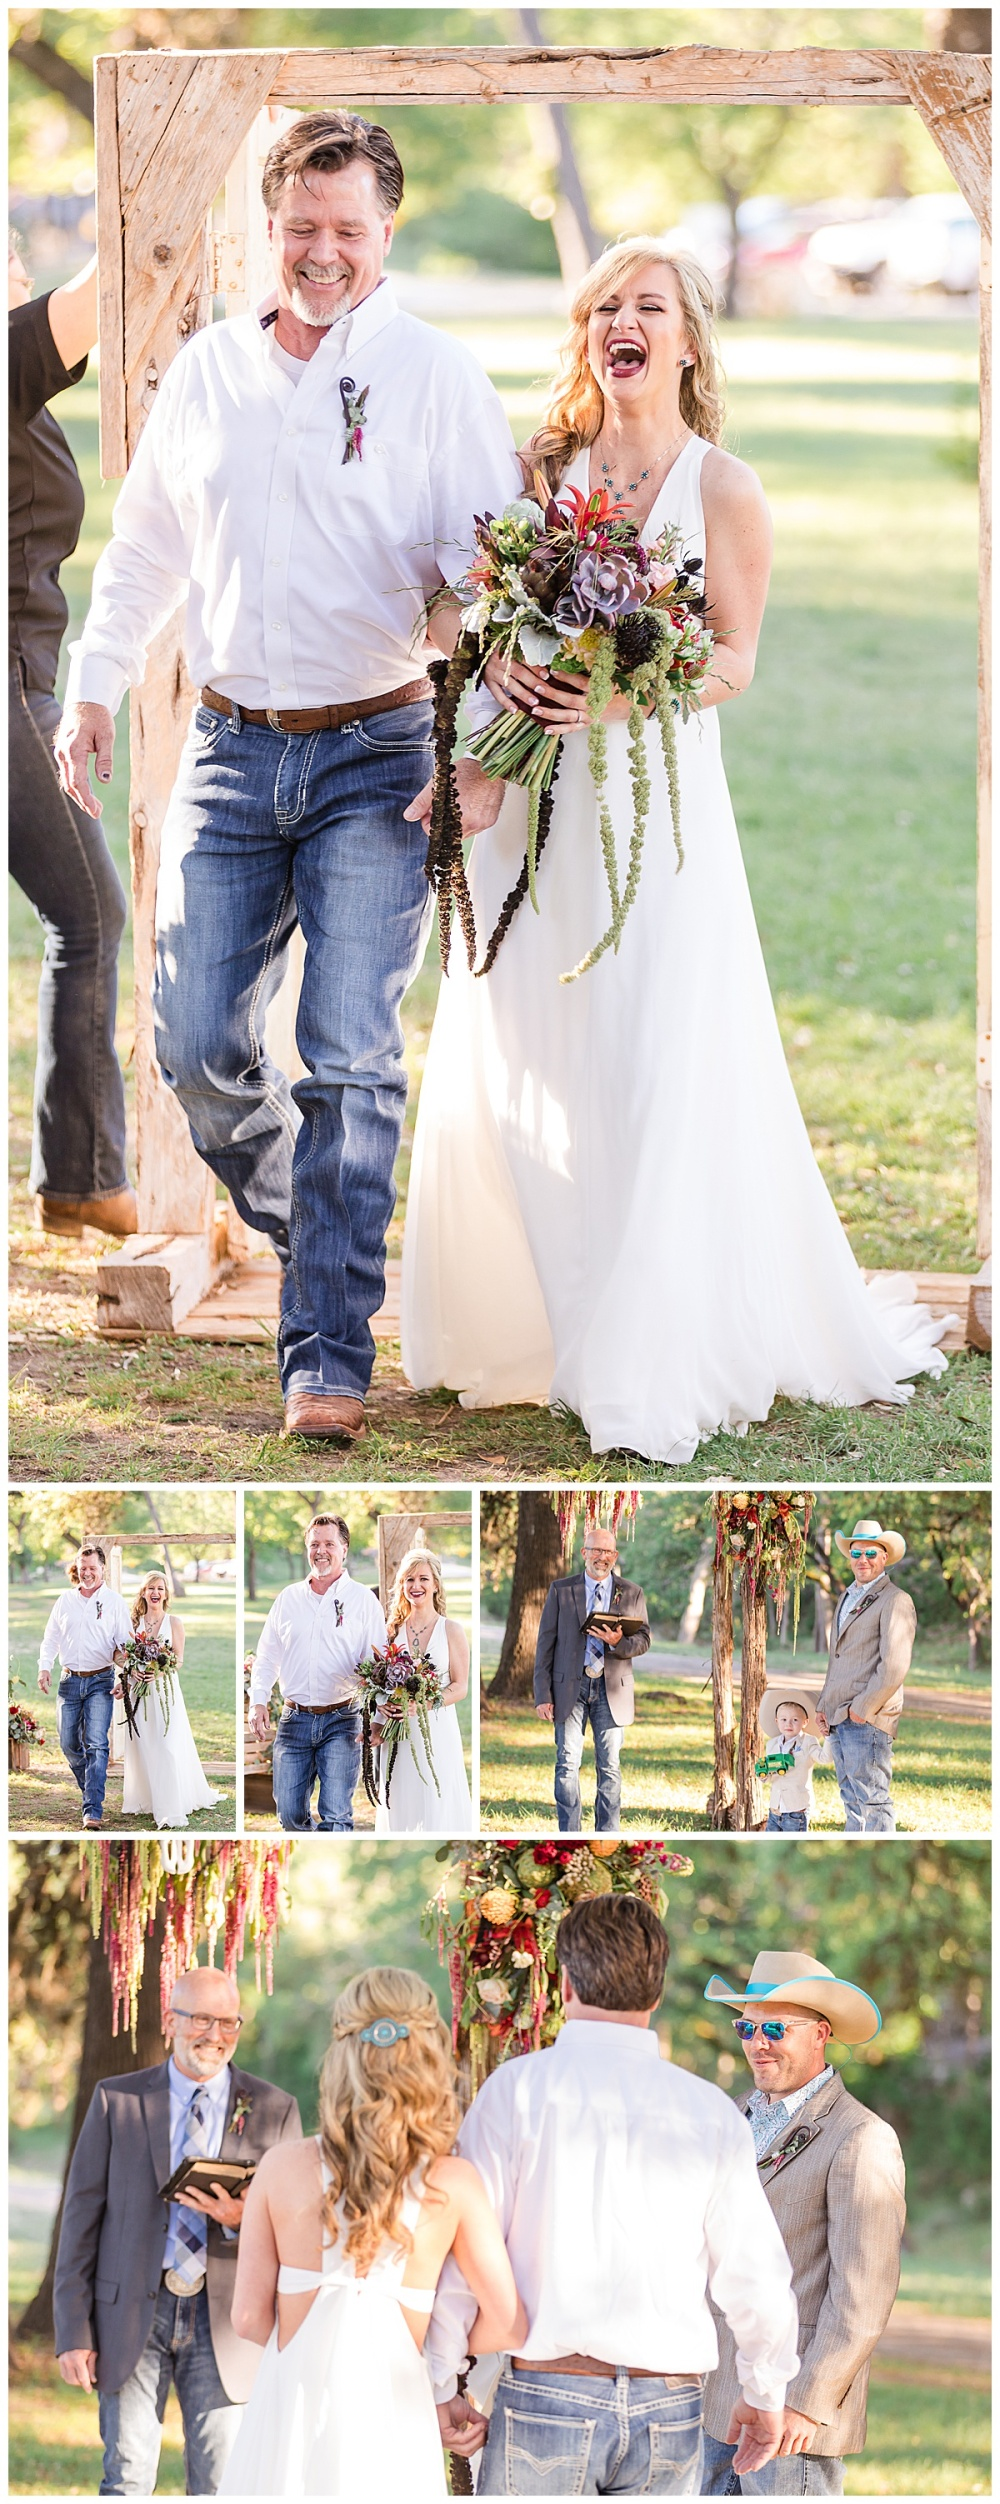 Eagle-Dancer-Ranch-Boerne-Texas-Wedding-Party-Barn-Carly-Barton-Photography_0029.jpg